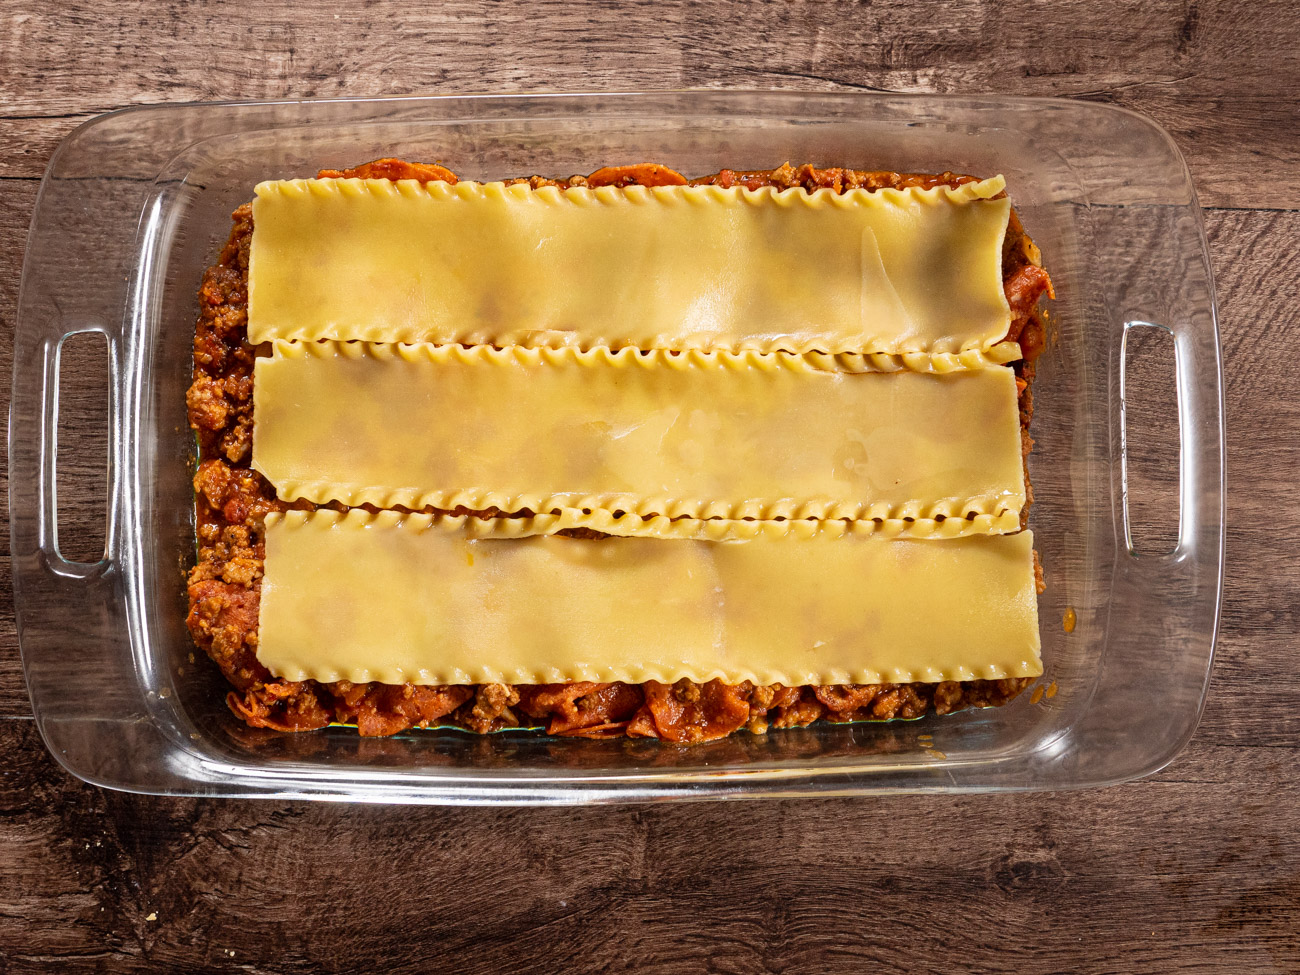 Spread sauce on bottom of a 9x13 baking pan or casserole dish. Layer noodles, ricotta, mozzarella, and parmesan. Repeat process starting with sauce, then noodles, and ending with cheeses.